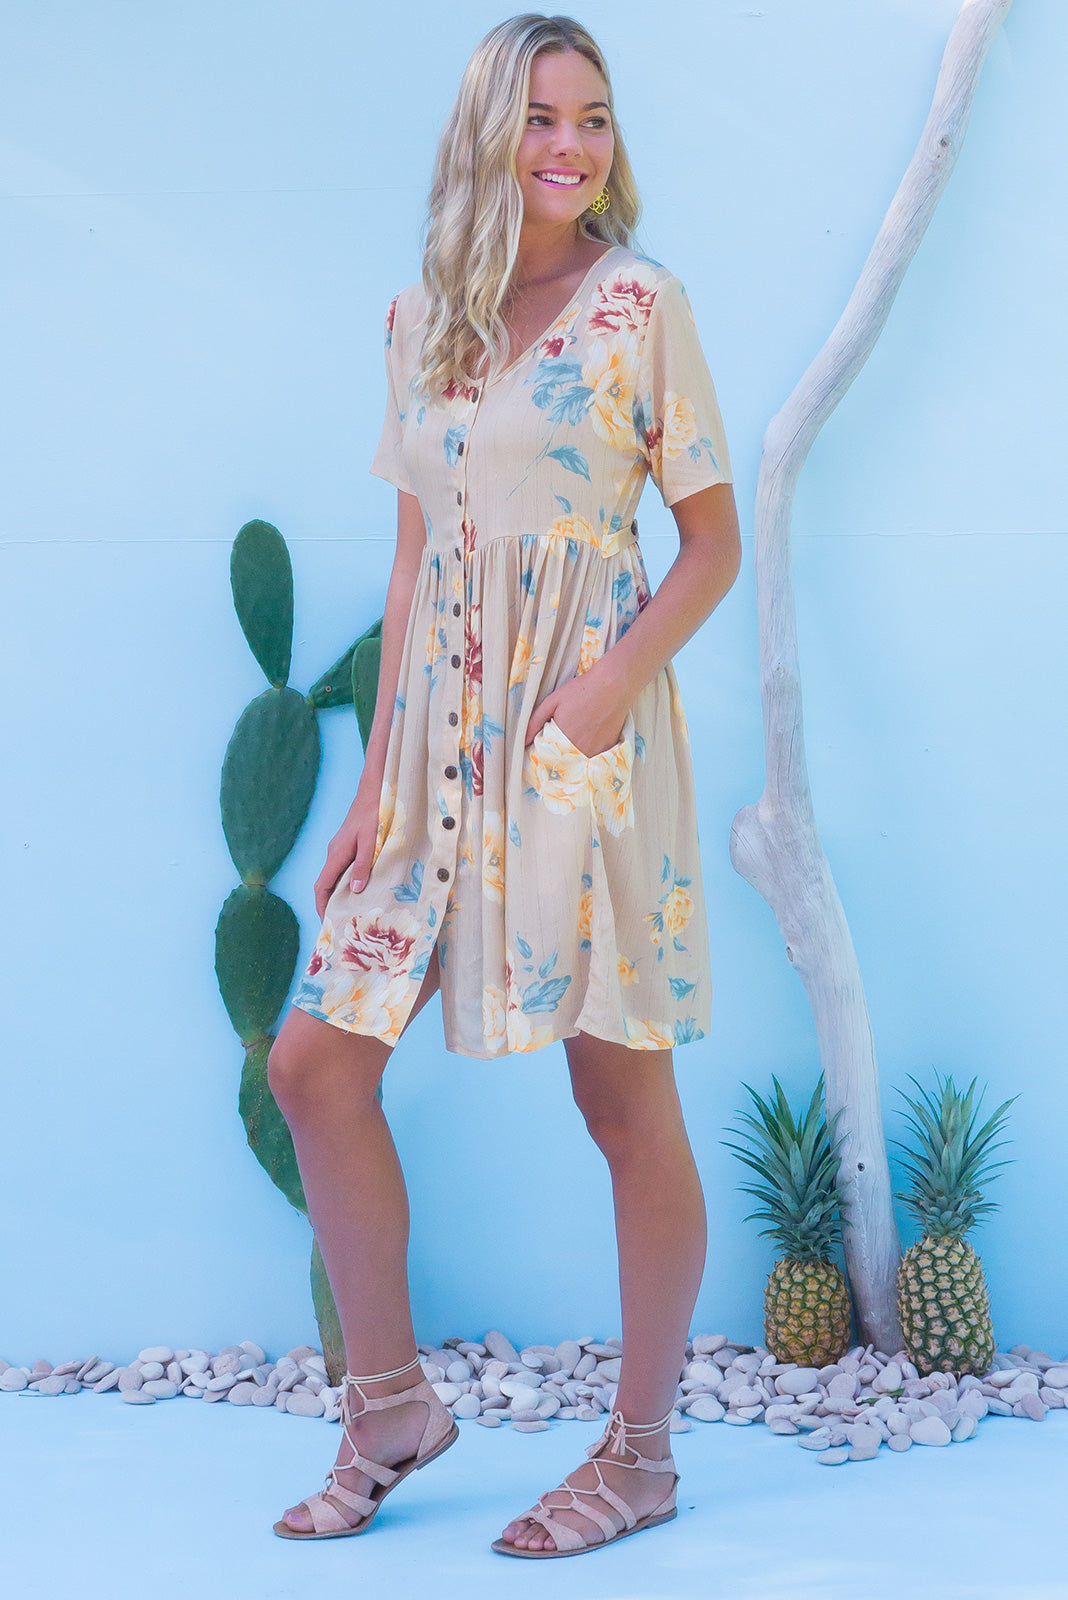 Little Rock Antiquity Gold button front dress in a pastel sandy yellow floral print on crinkled rayon